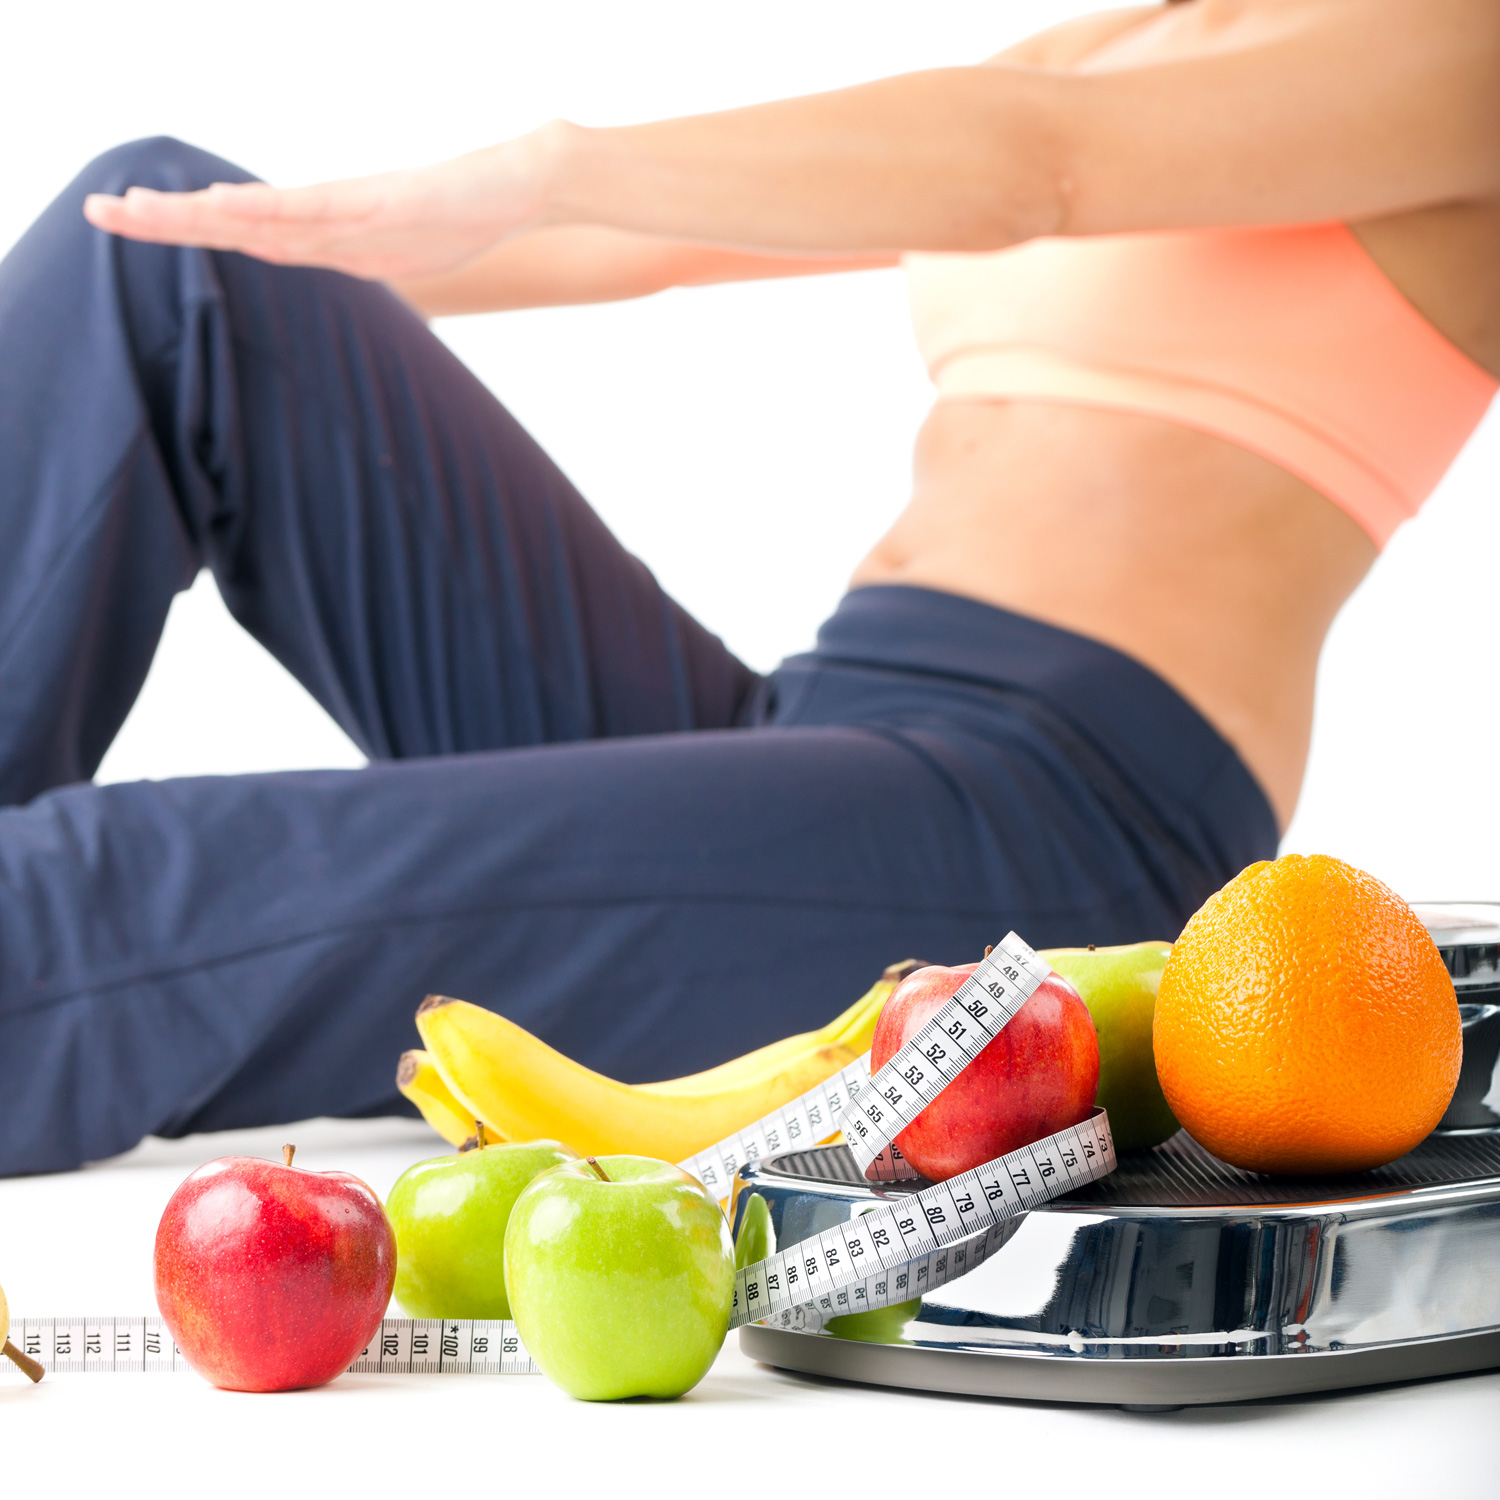 Tips For Effective Weight Loss: 20 Effective Tips For Quick Weight Loss